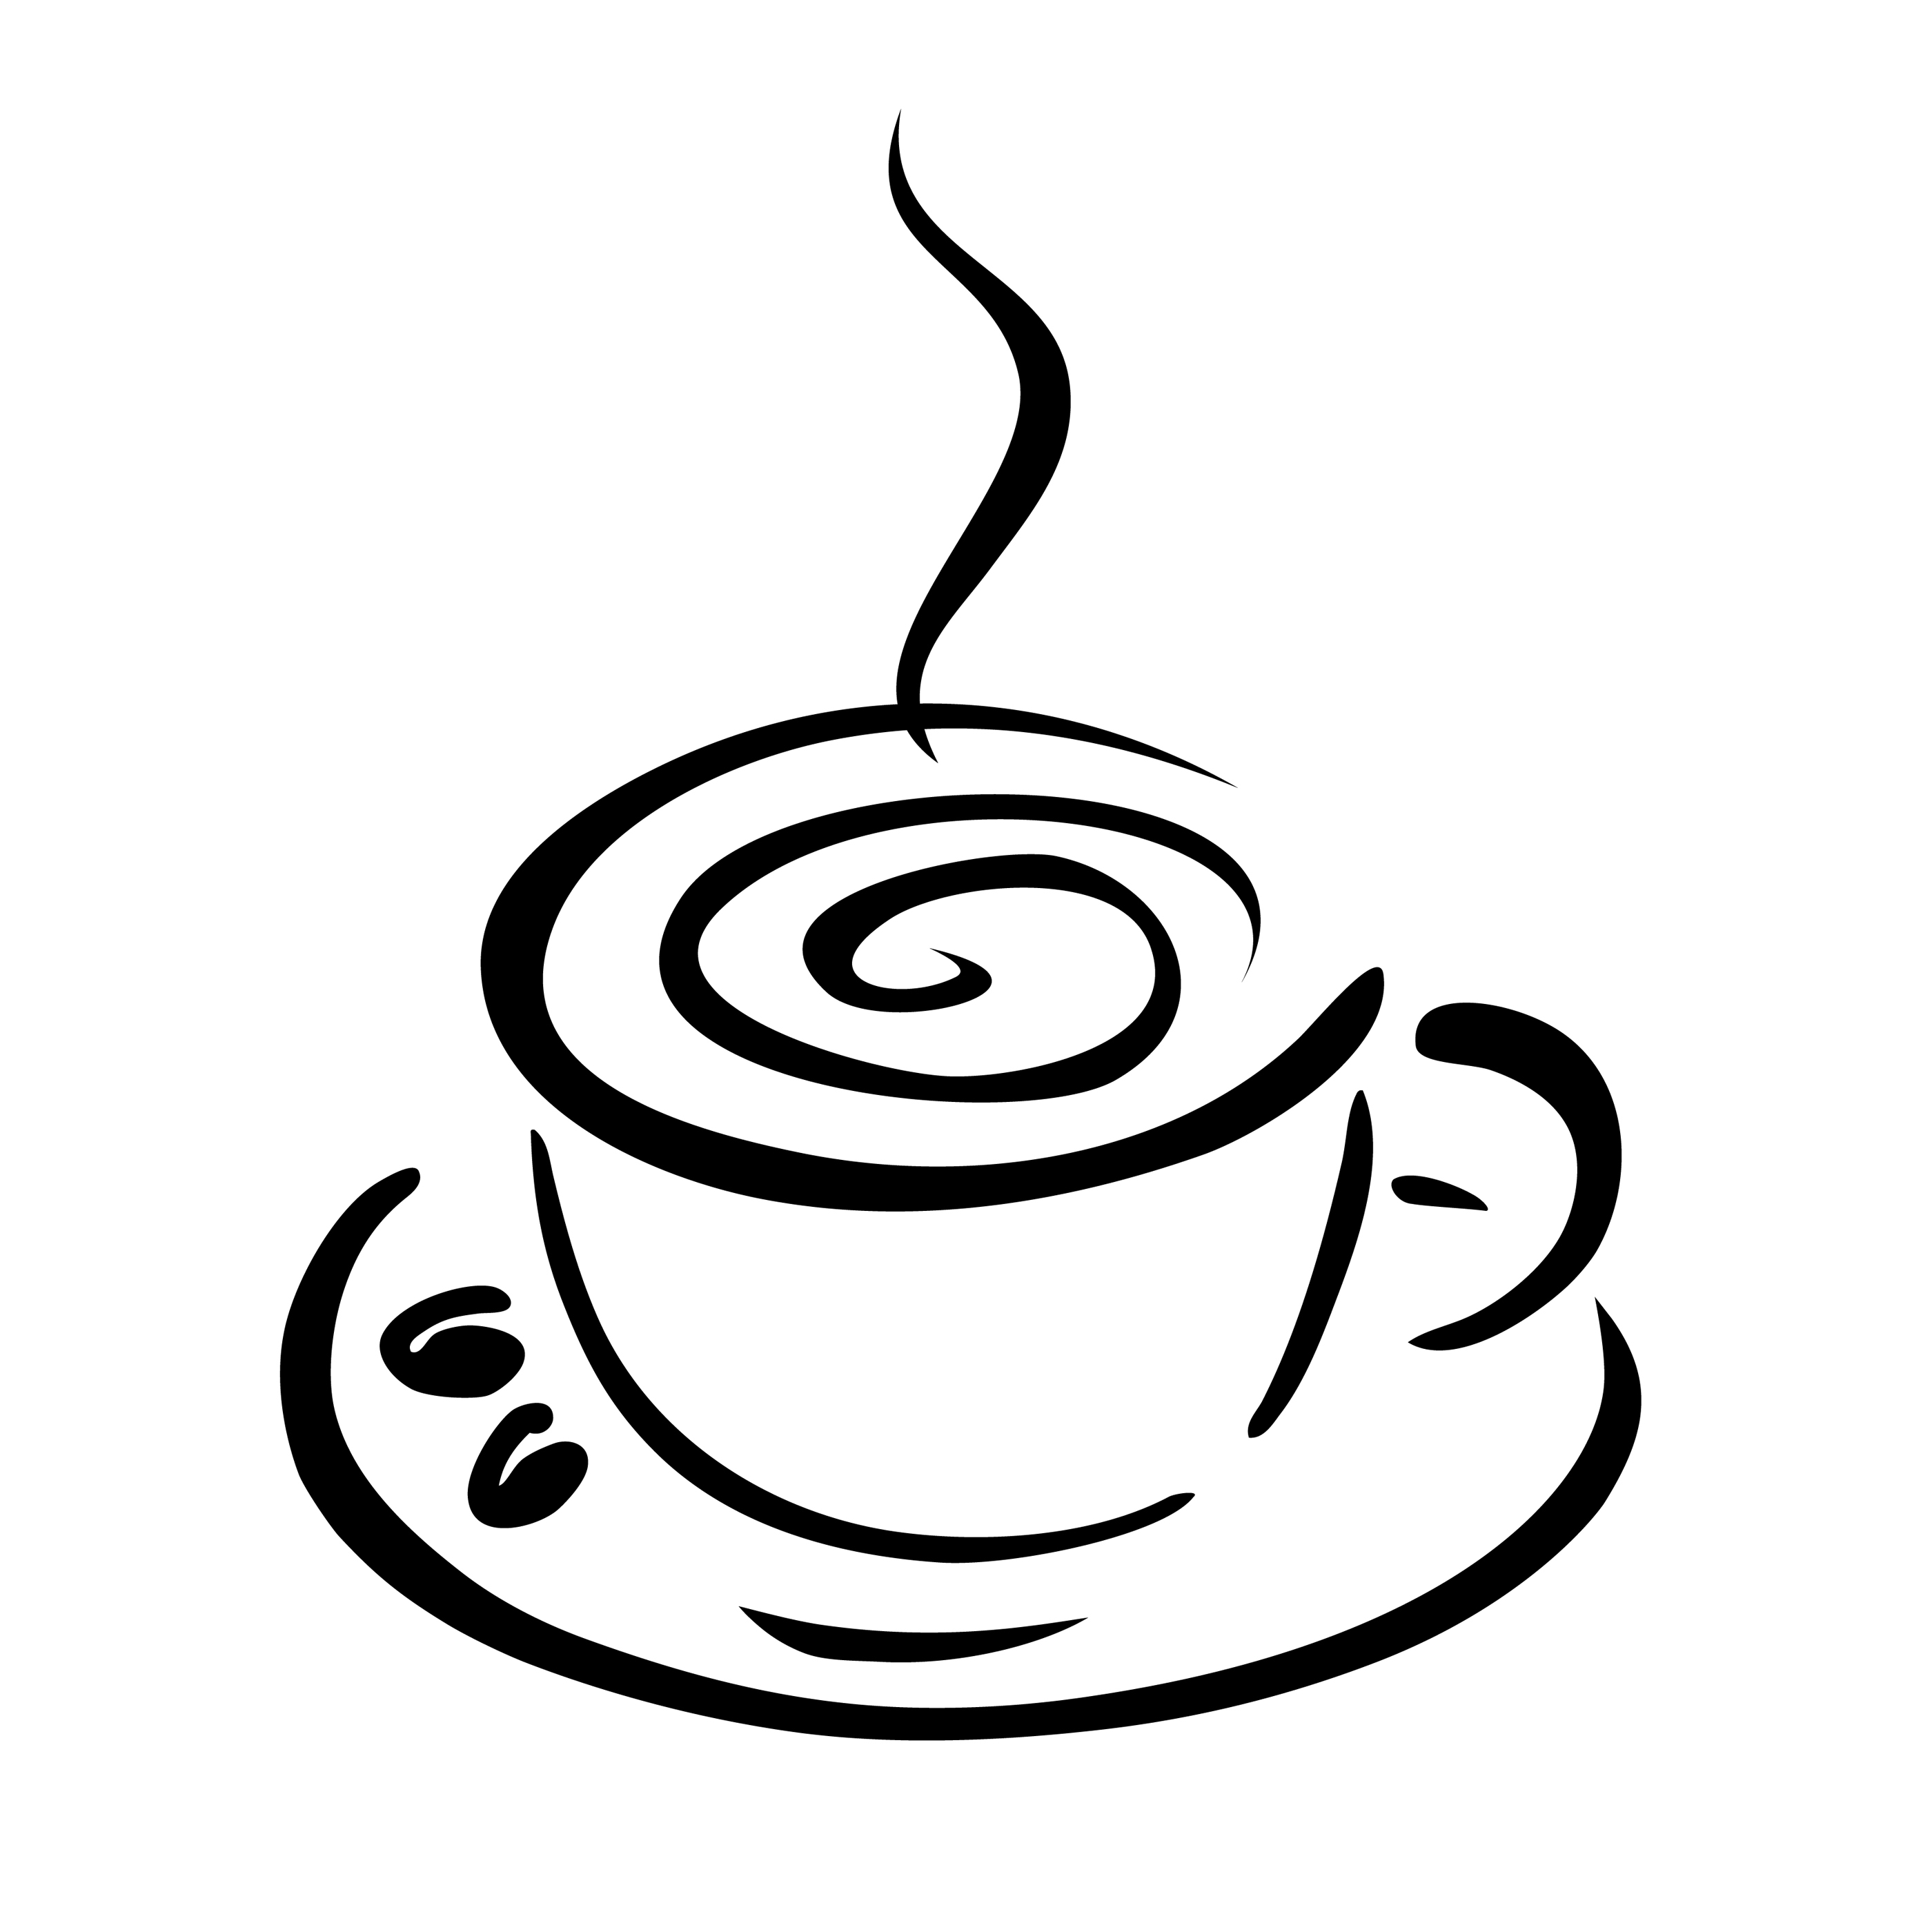 Cappuccino clipart black and white White 4 coffee Clipart clipart